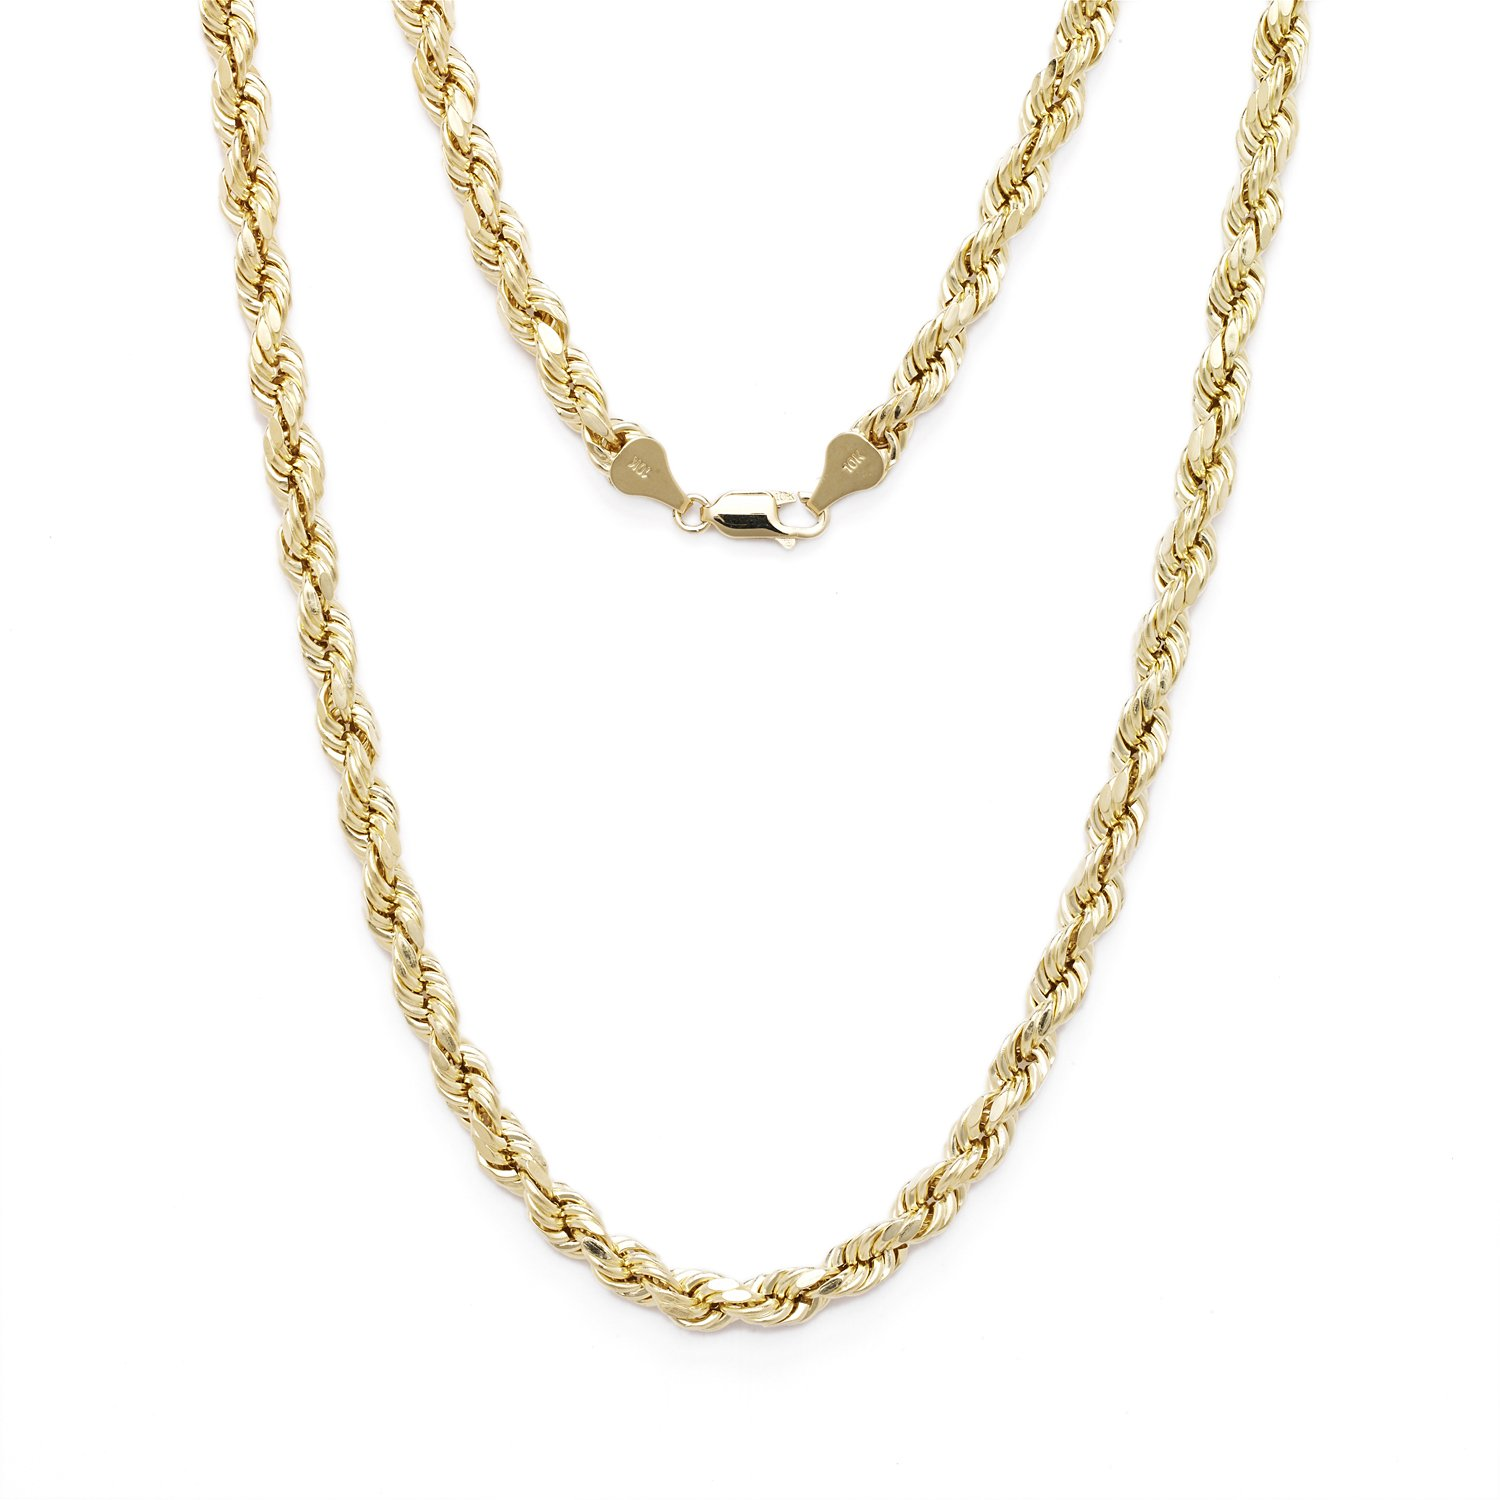 28 Inch 10k Yellow Gold Diamond Cut Hollow Rope Chain Necklace with Lobster Claw Clasp, 2.5mm by SL Chain Collection